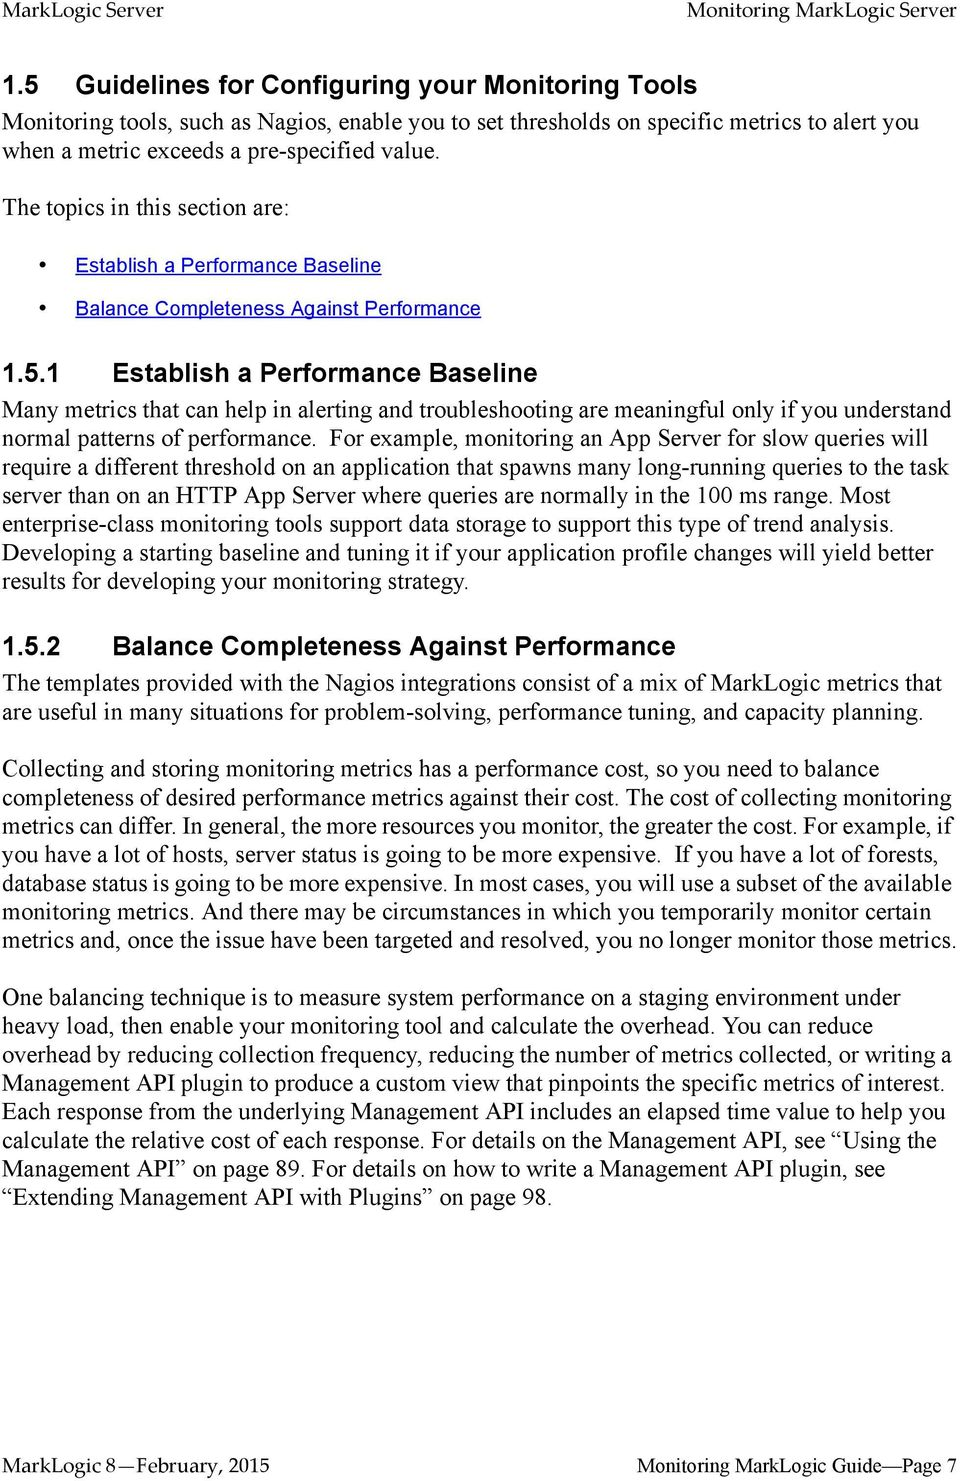 The topics in this section are: Establish a Performance Baseline Balance Completeness Against Performance 1.5.